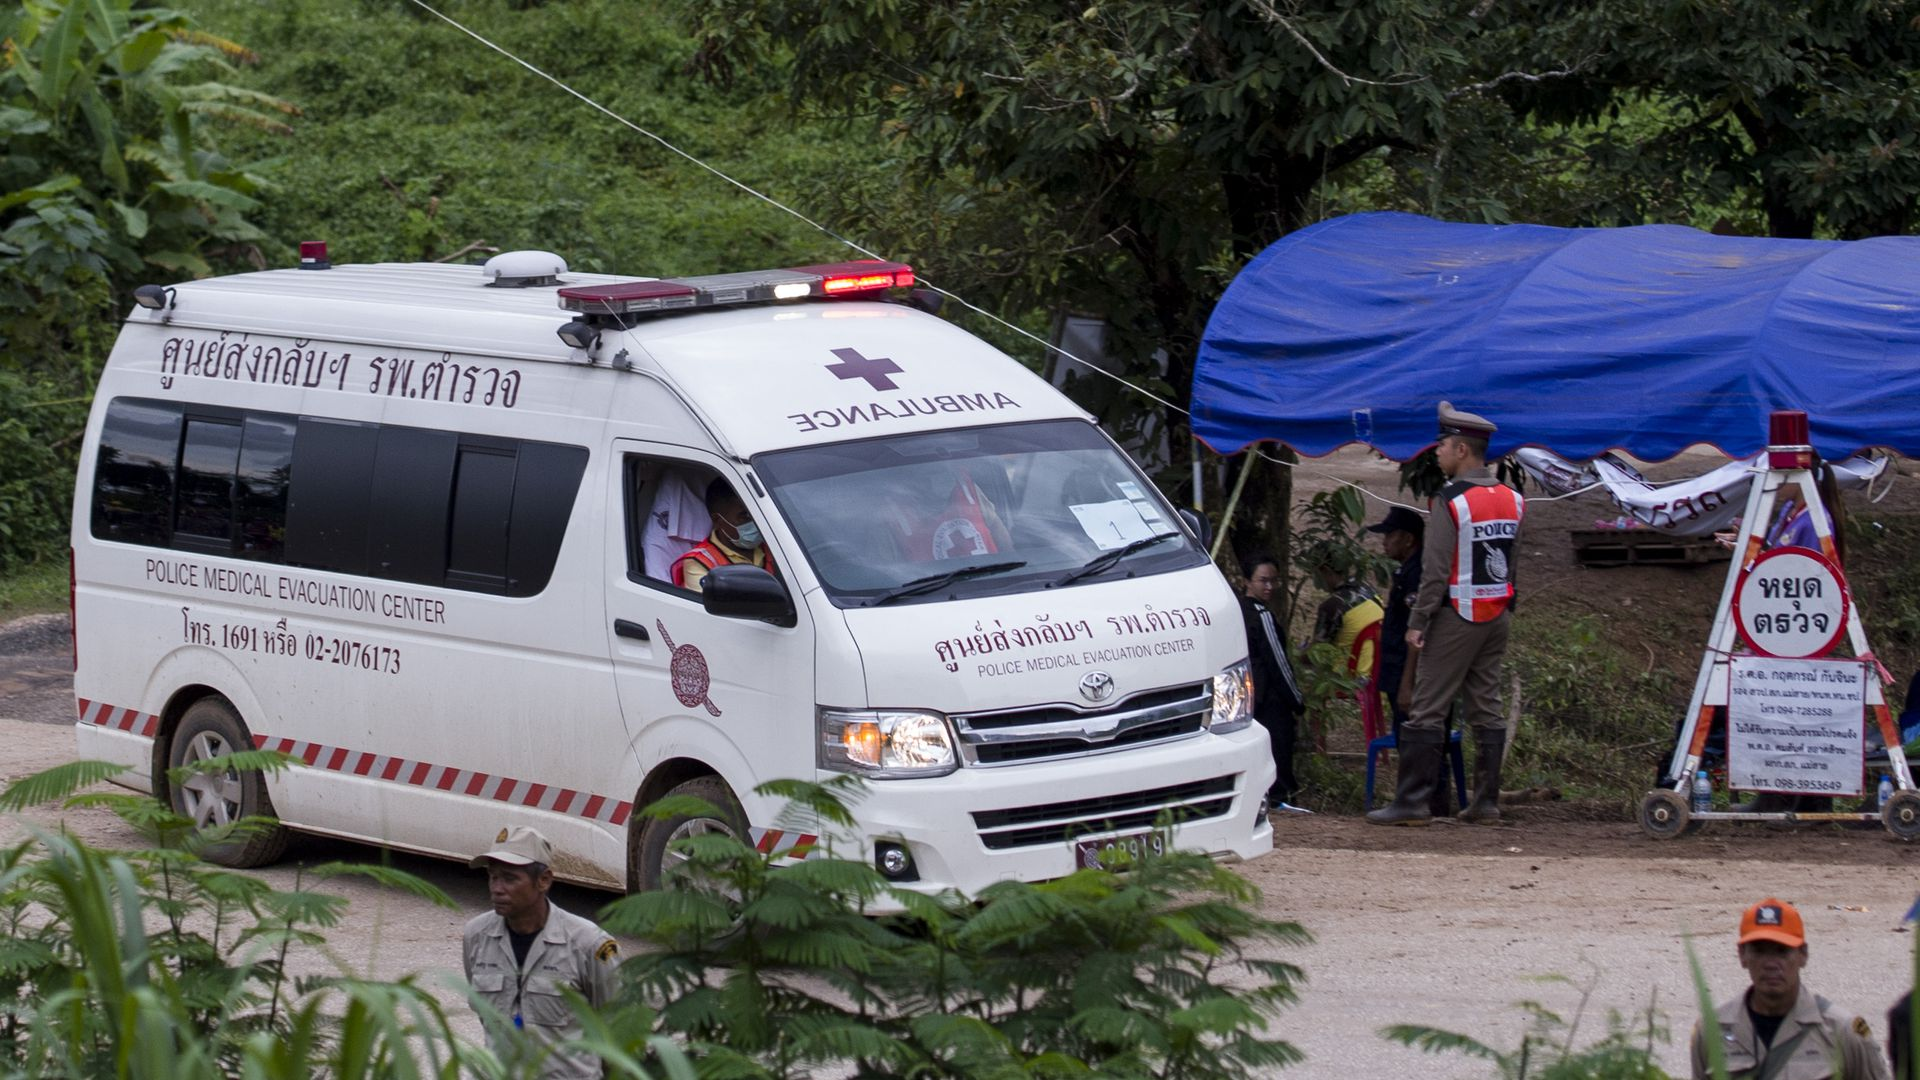 An ambulance sits outside the Tham Luang cave area during rescue operations.